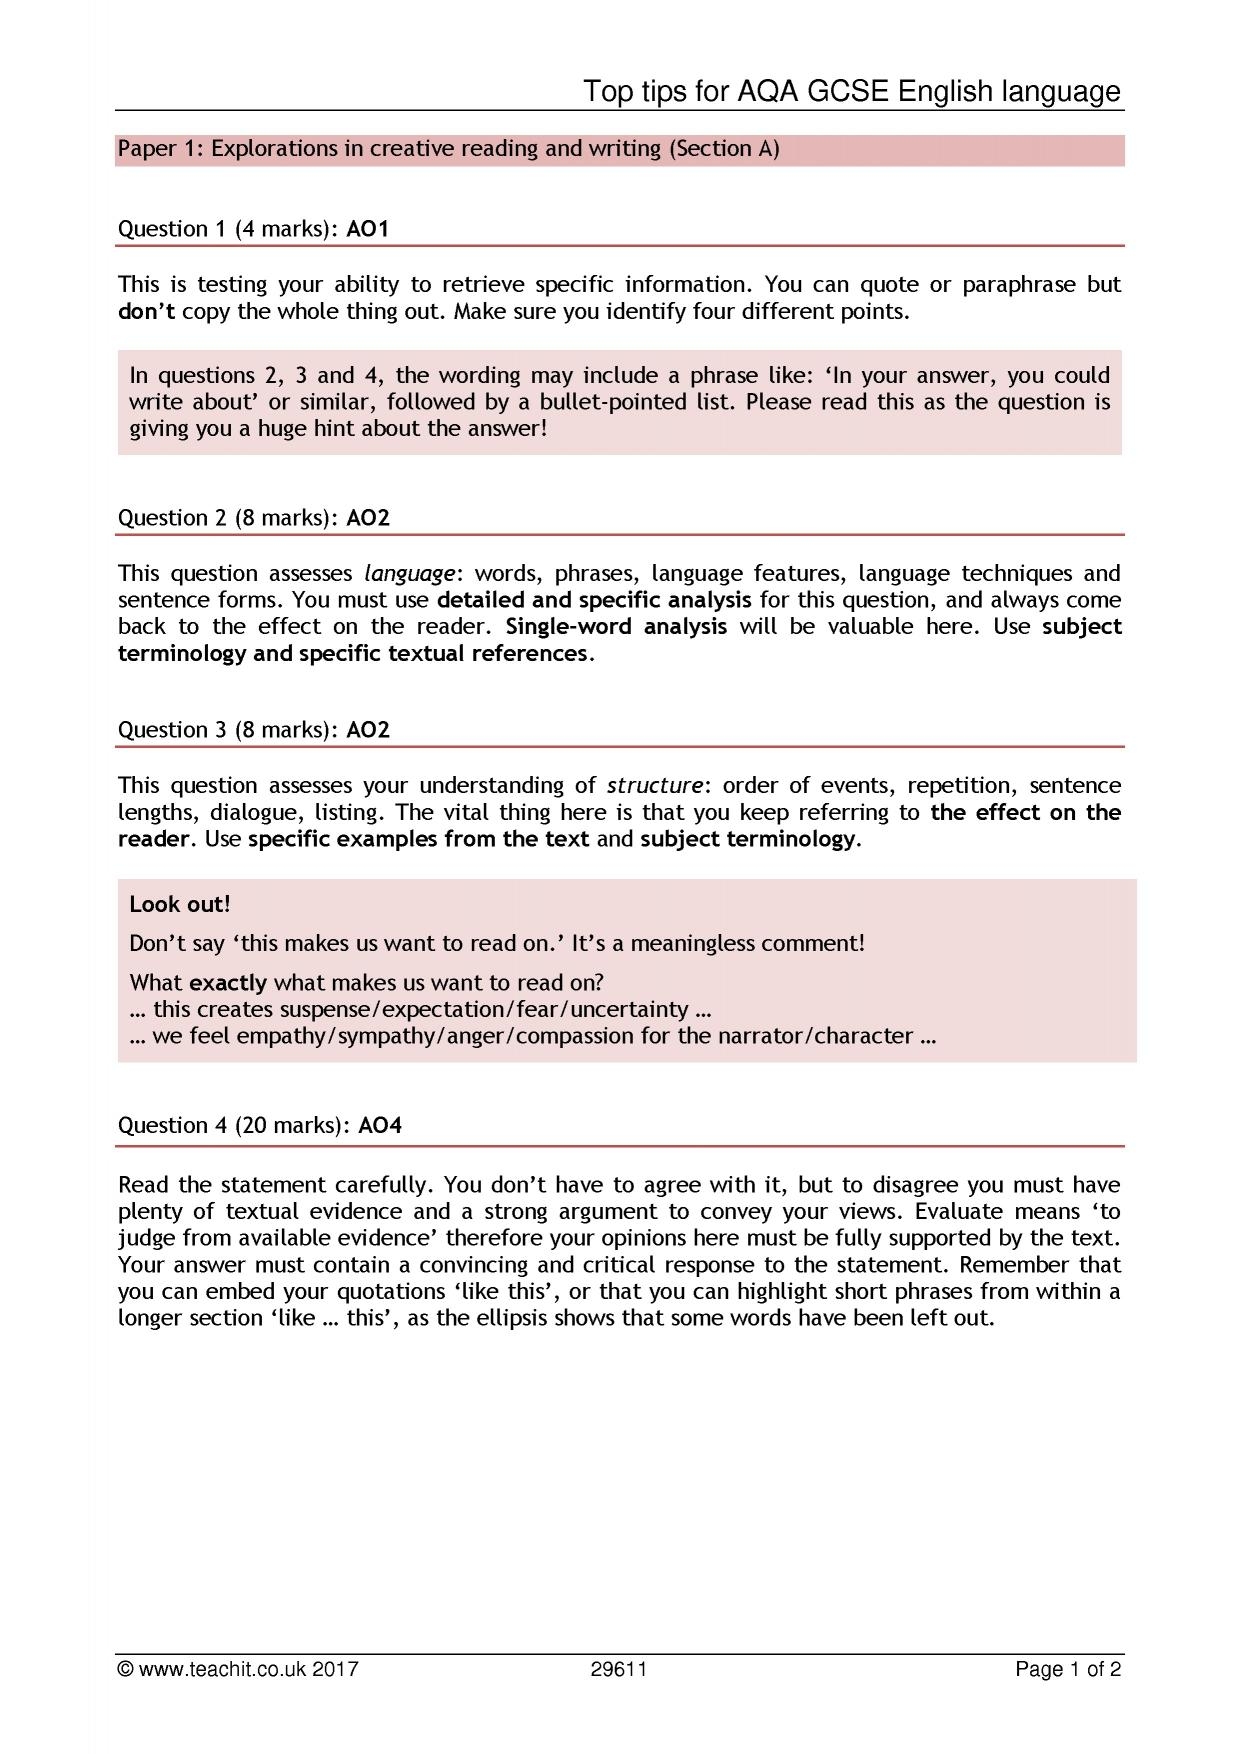 019 X68072 Php Pagespeed Ic Y7jr98fve1 English Research Paper Impressive Format Mla Full